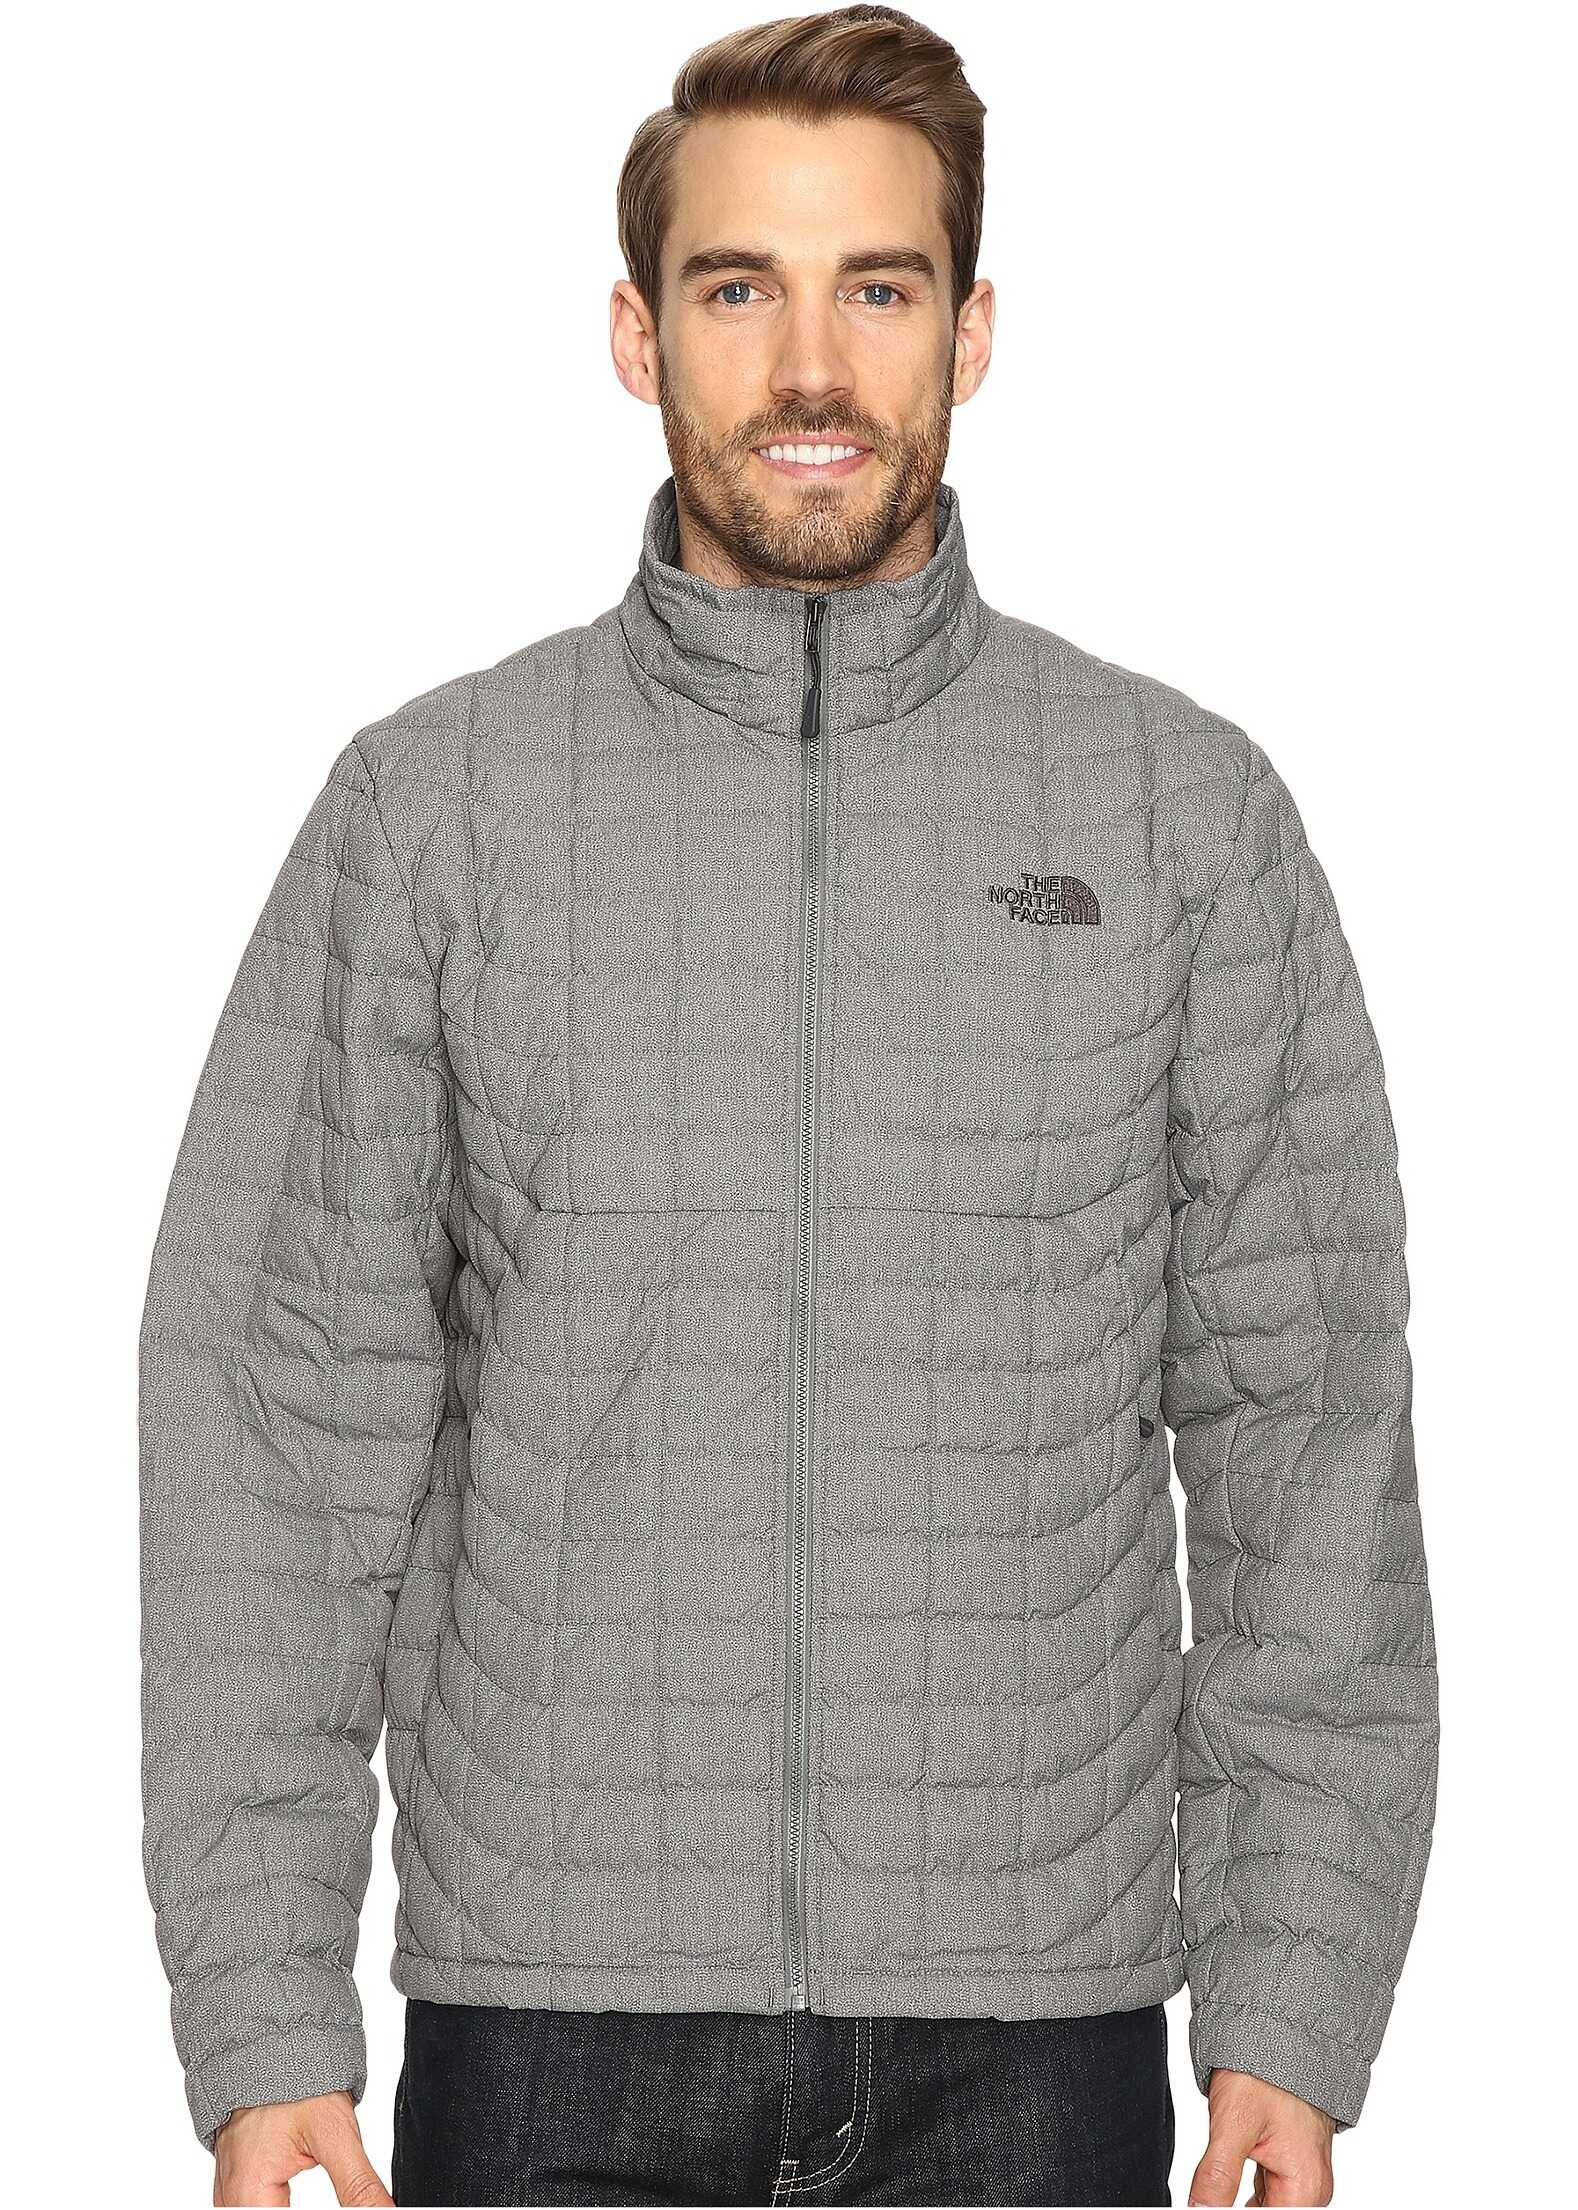 The North Face ThermoBall™ Full Zip Jacket Fusebox Grey Texture (Prior Season)